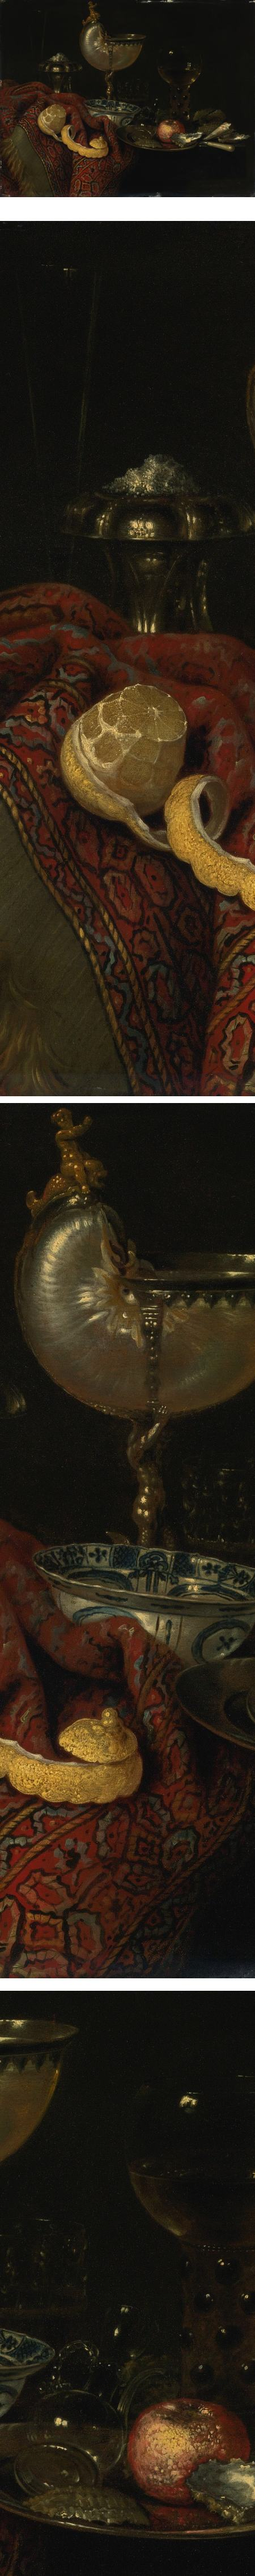 Still Life of Oysters, a Nautilus Cup, a Roemer, Lemon and Other Objects, Willem Claeszoon Heda